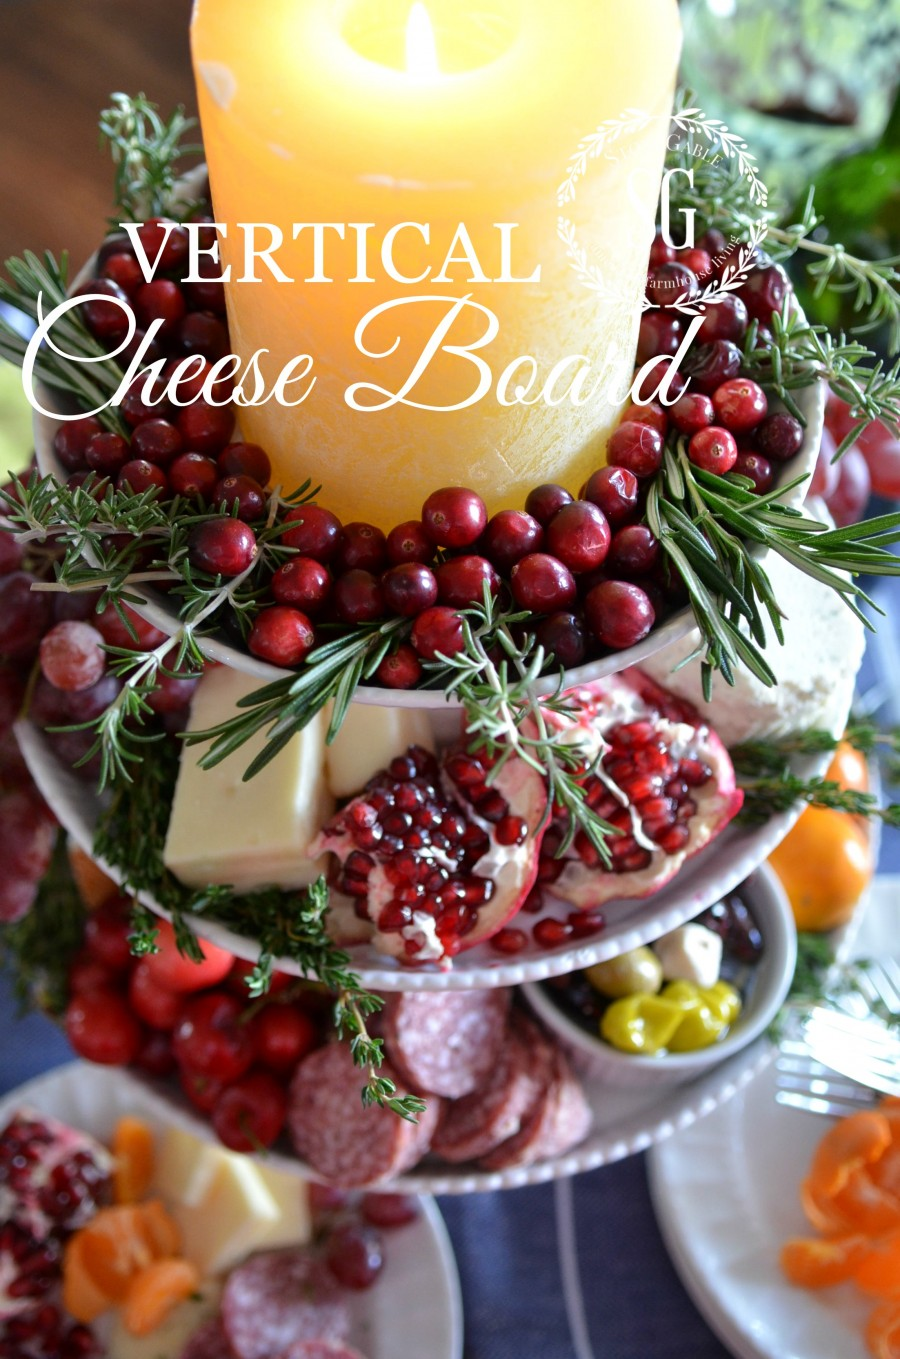 VERTICAL CHEESE BOARD